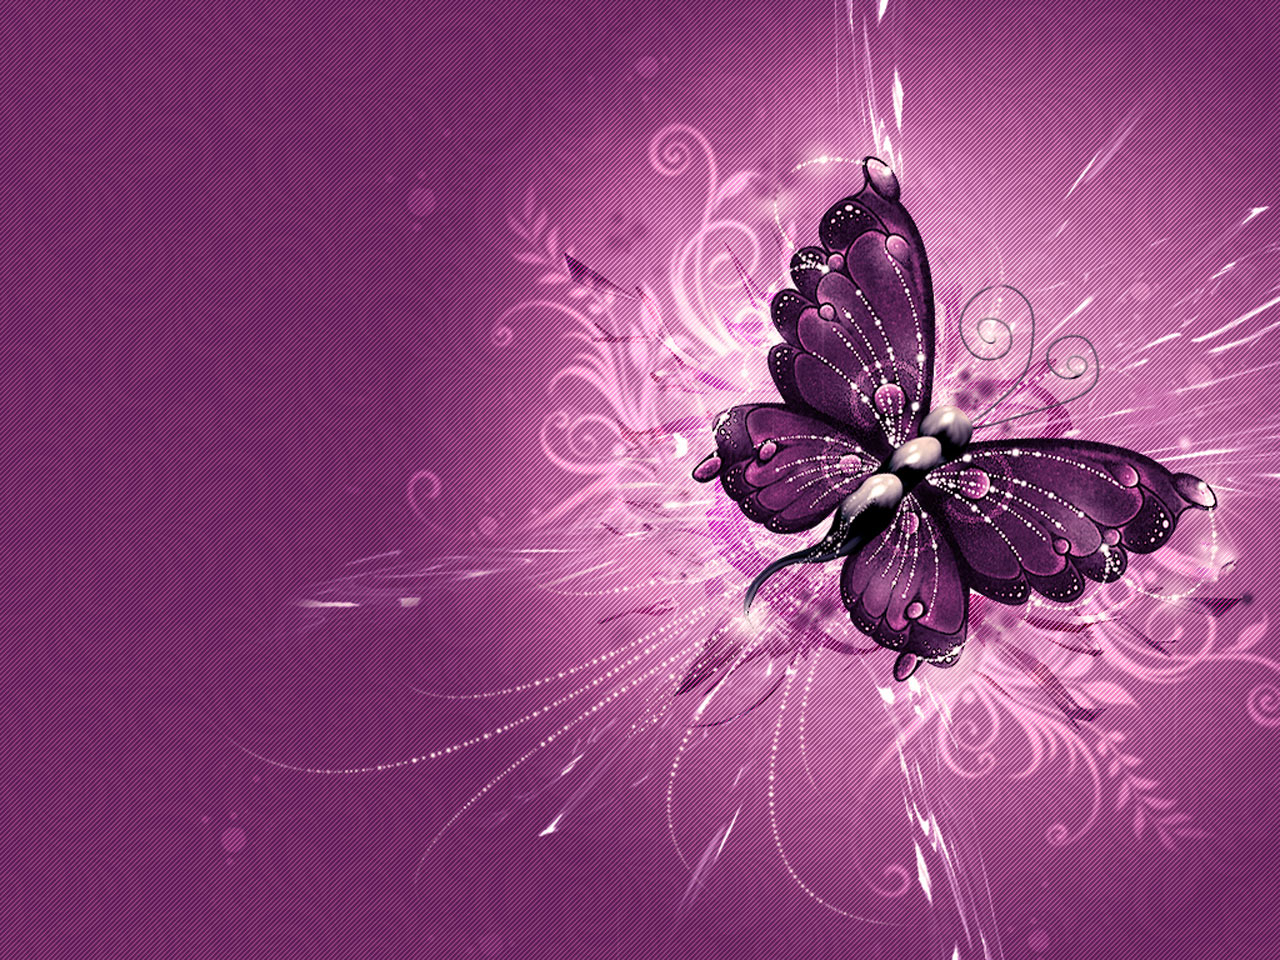 ... free. Get Wallpaper Purple and make this wallpaper for your desktop